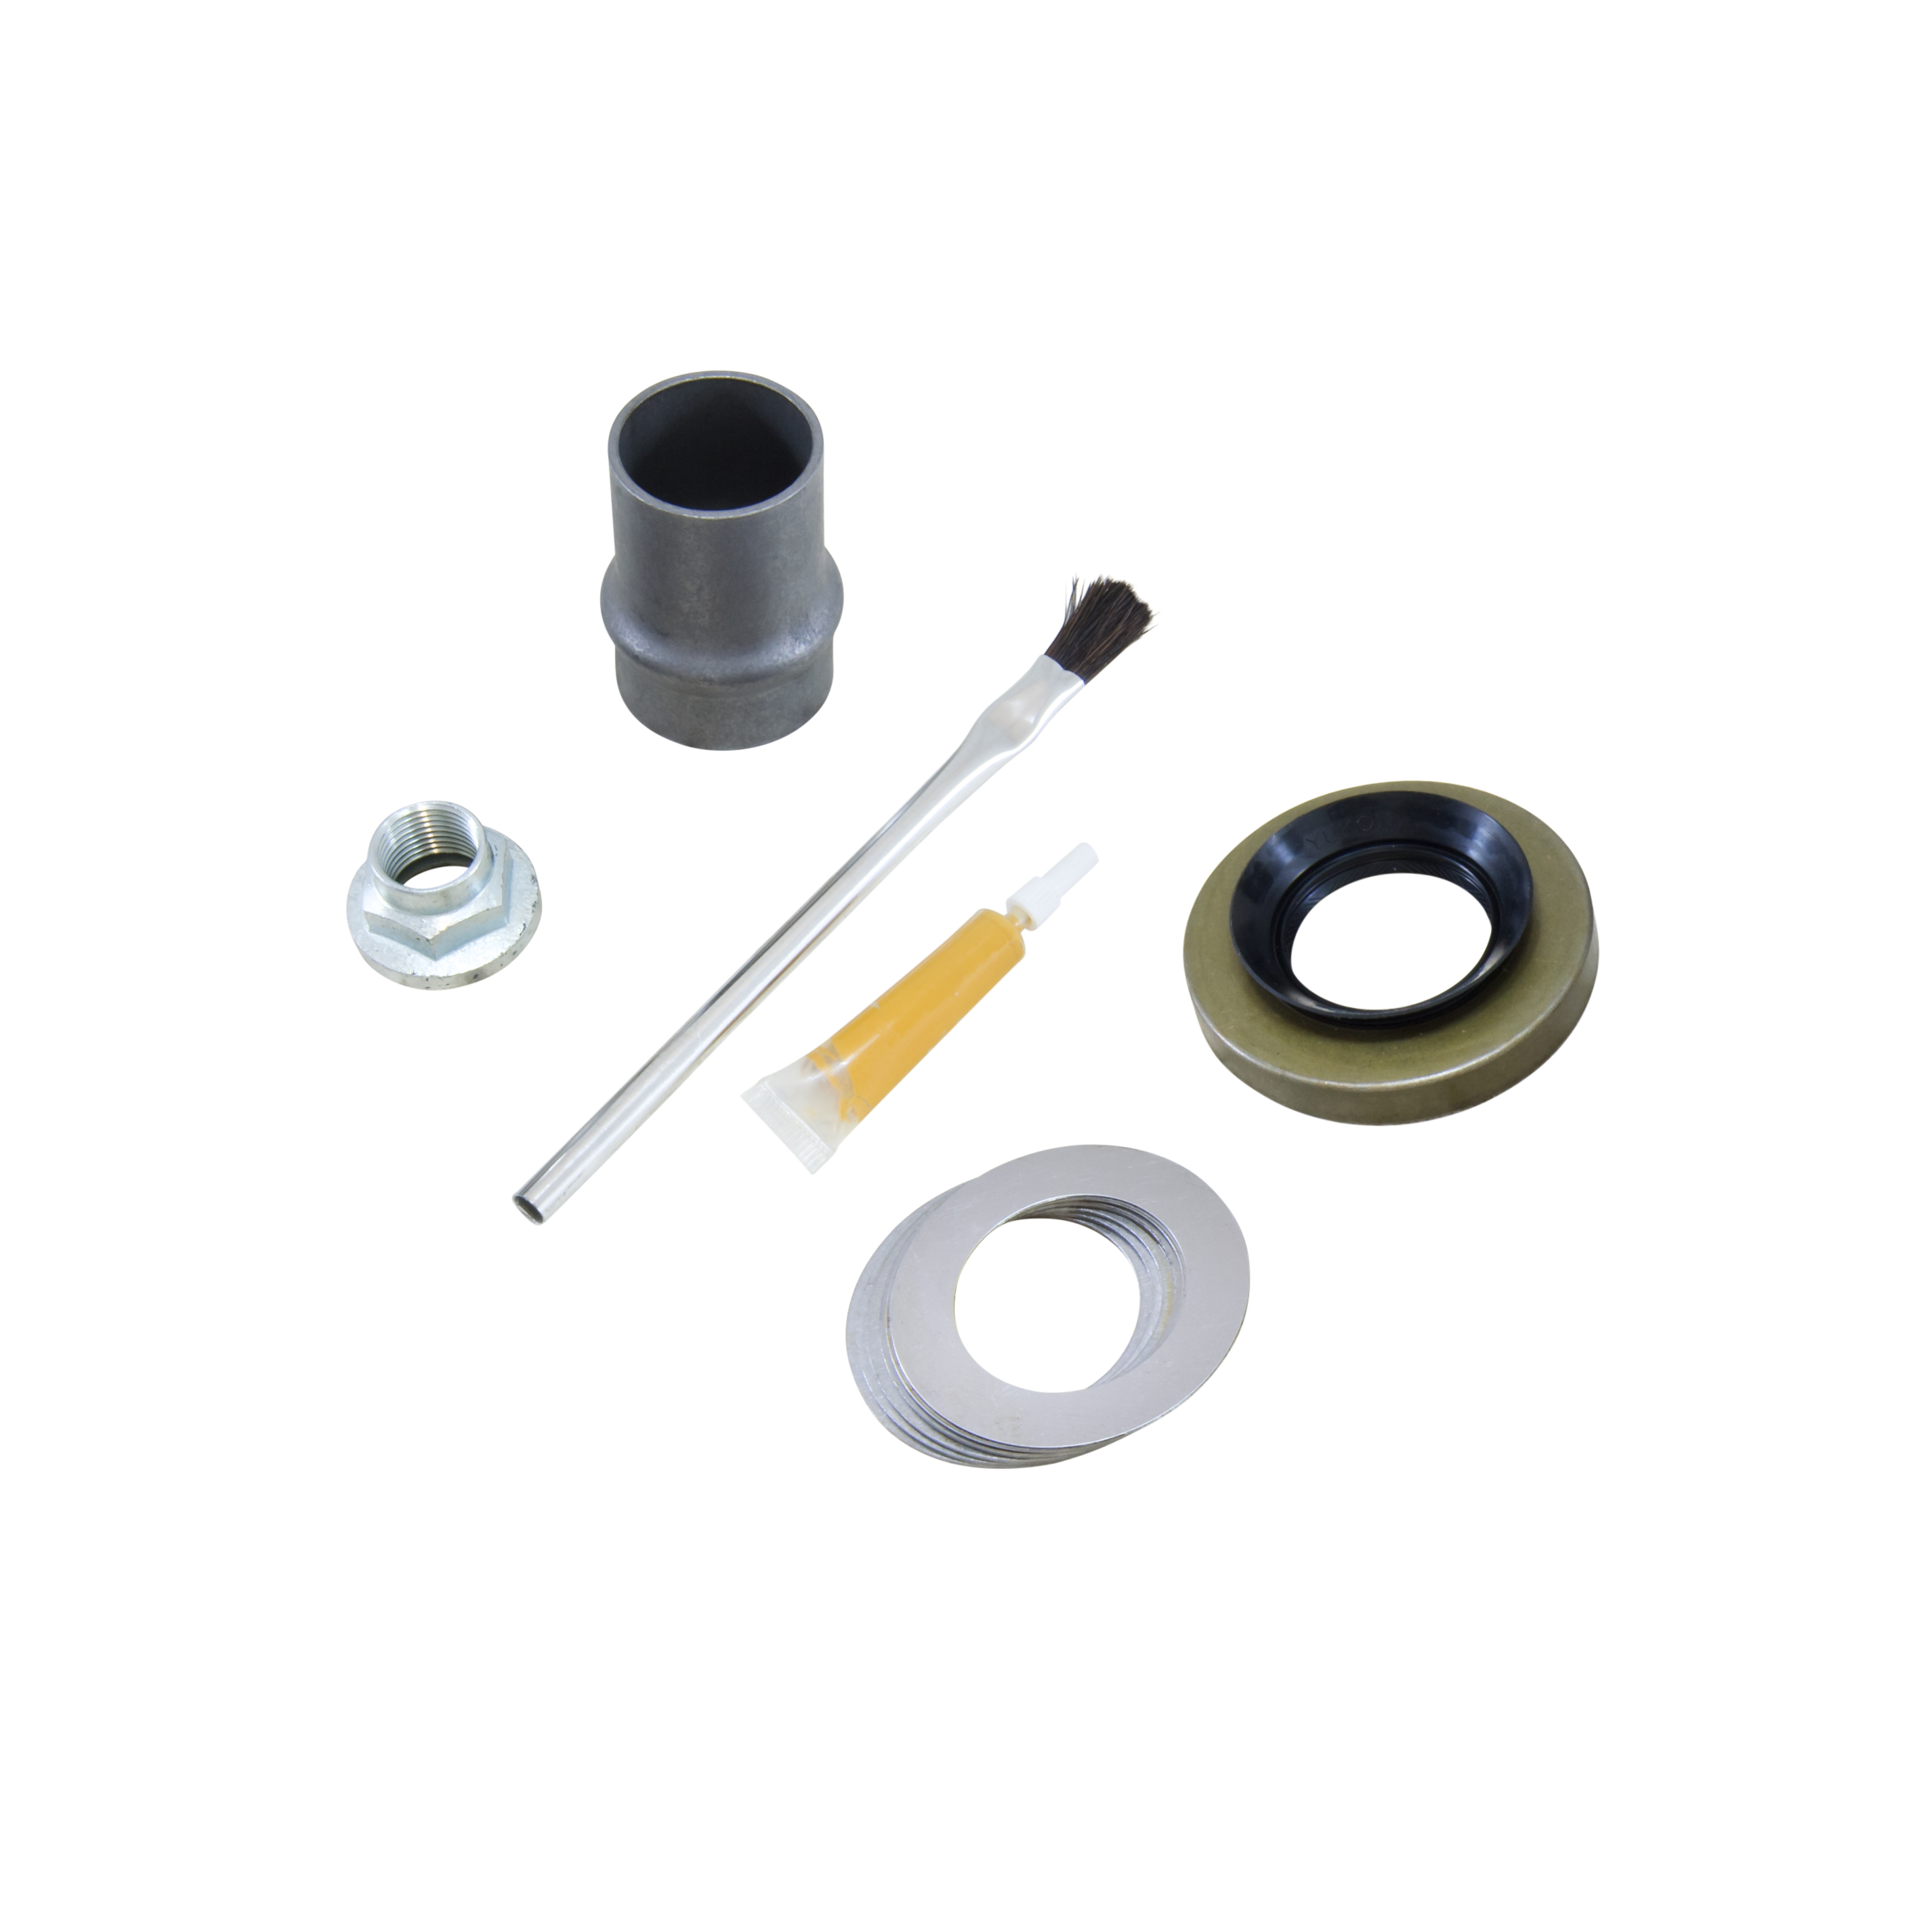 MK GM8.5 - Yukon Minor install kit for GM 8.5